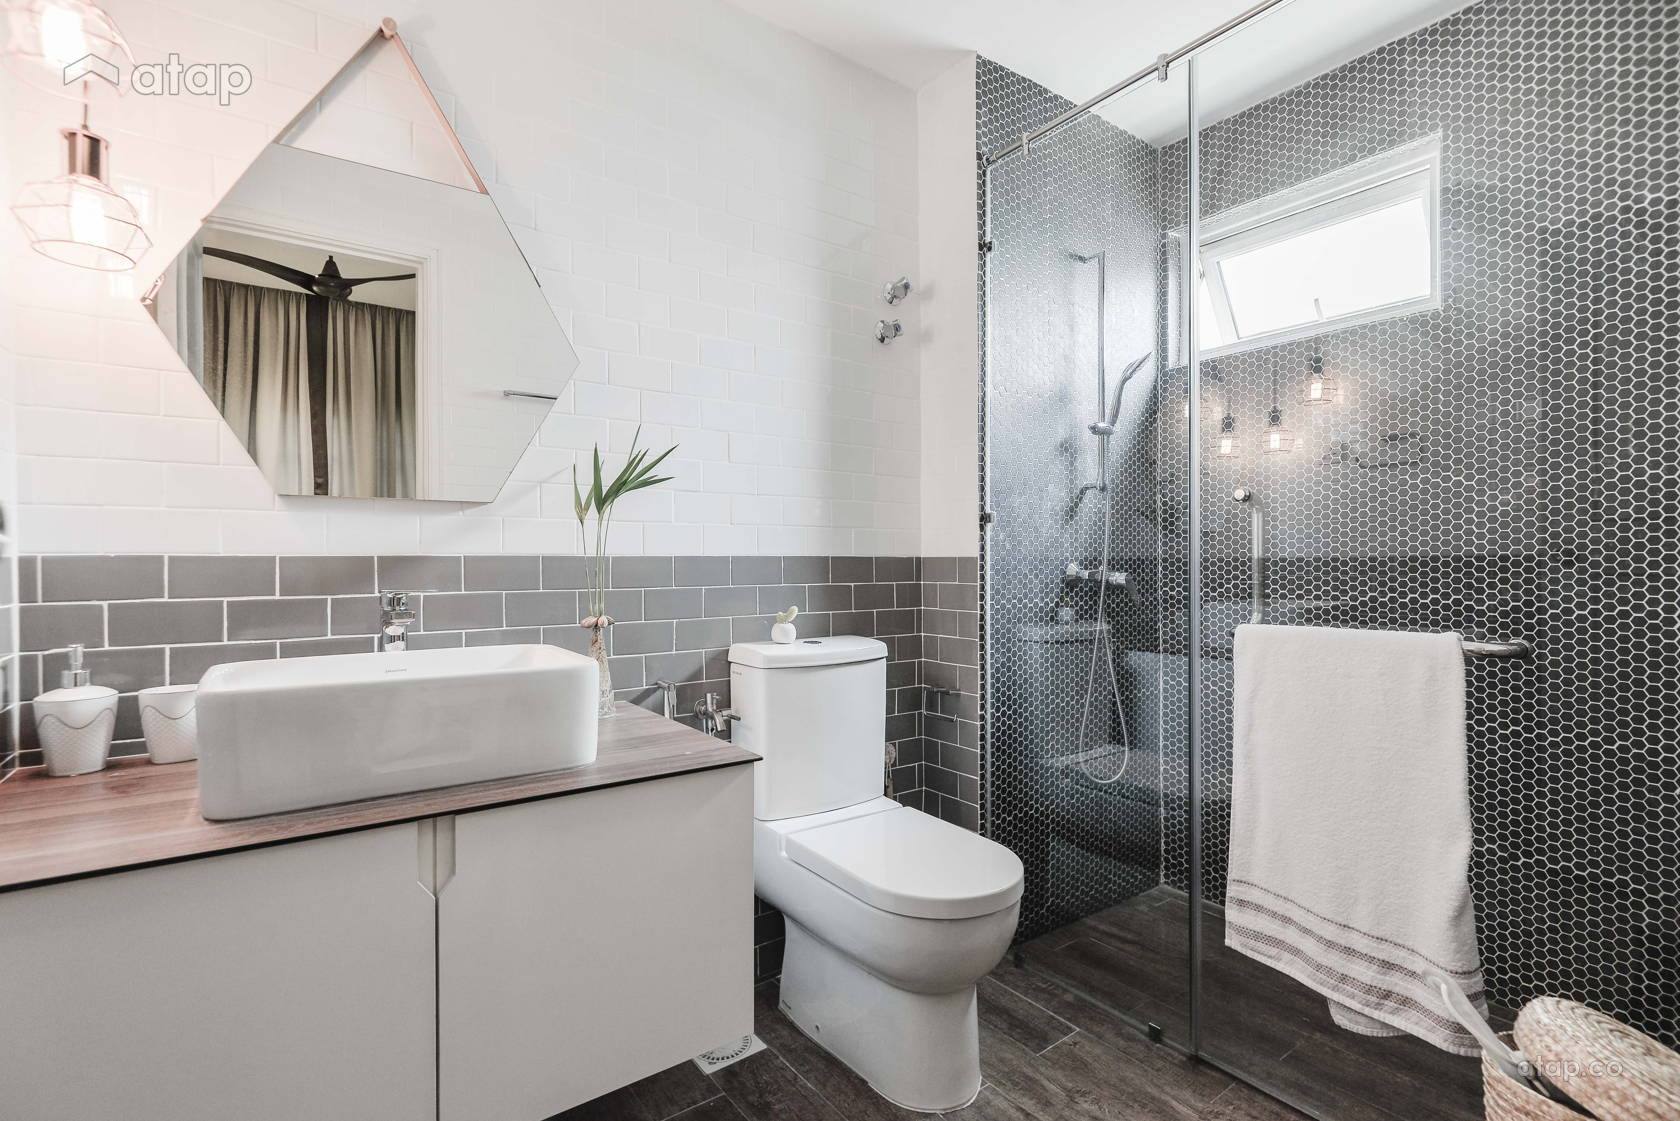 20 Malaysian Bathroom Design Ideas for Your Renovation | Atap.co